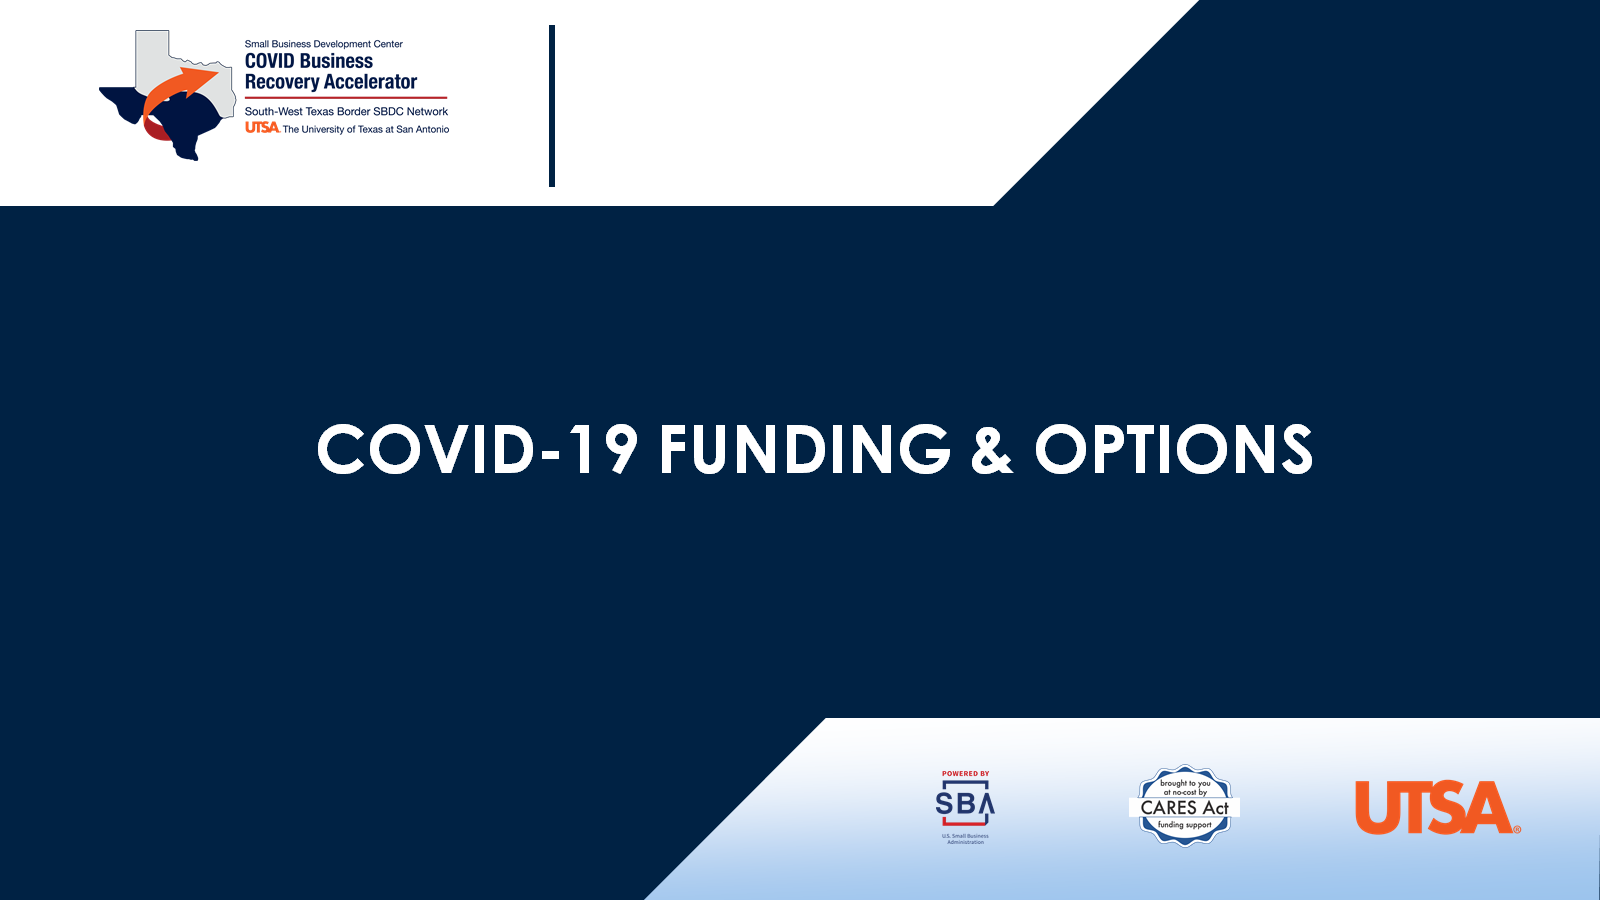 COVID-19 Funding and Options